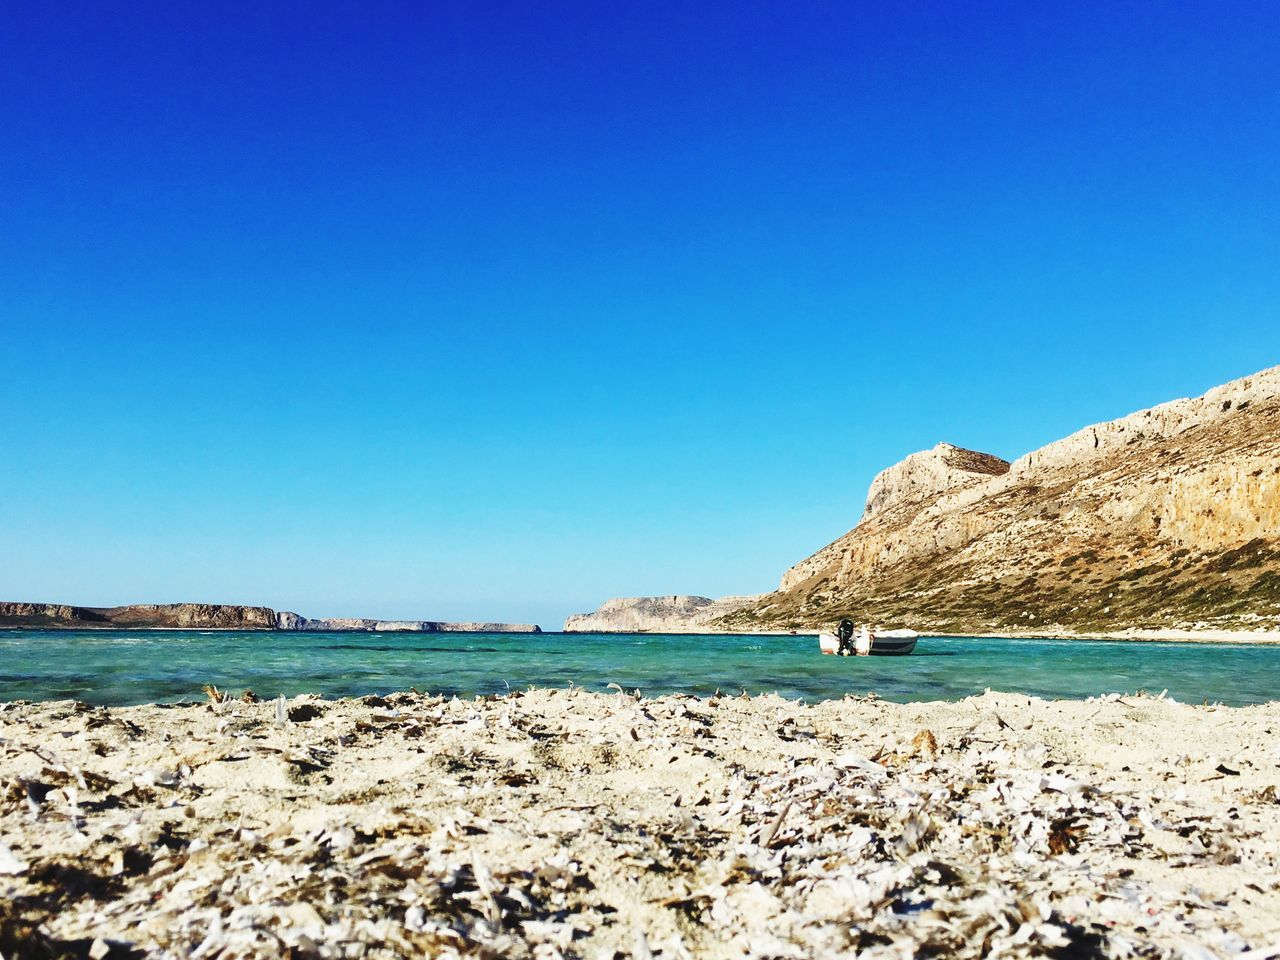 water, sea, sky, clear sky, blue, copy space, beauty in nature, scenics - nature, land, rock, nature, solid, day, tranquil scene, tranquility, beach, rock - object, idyllic, rock formation, outdoors